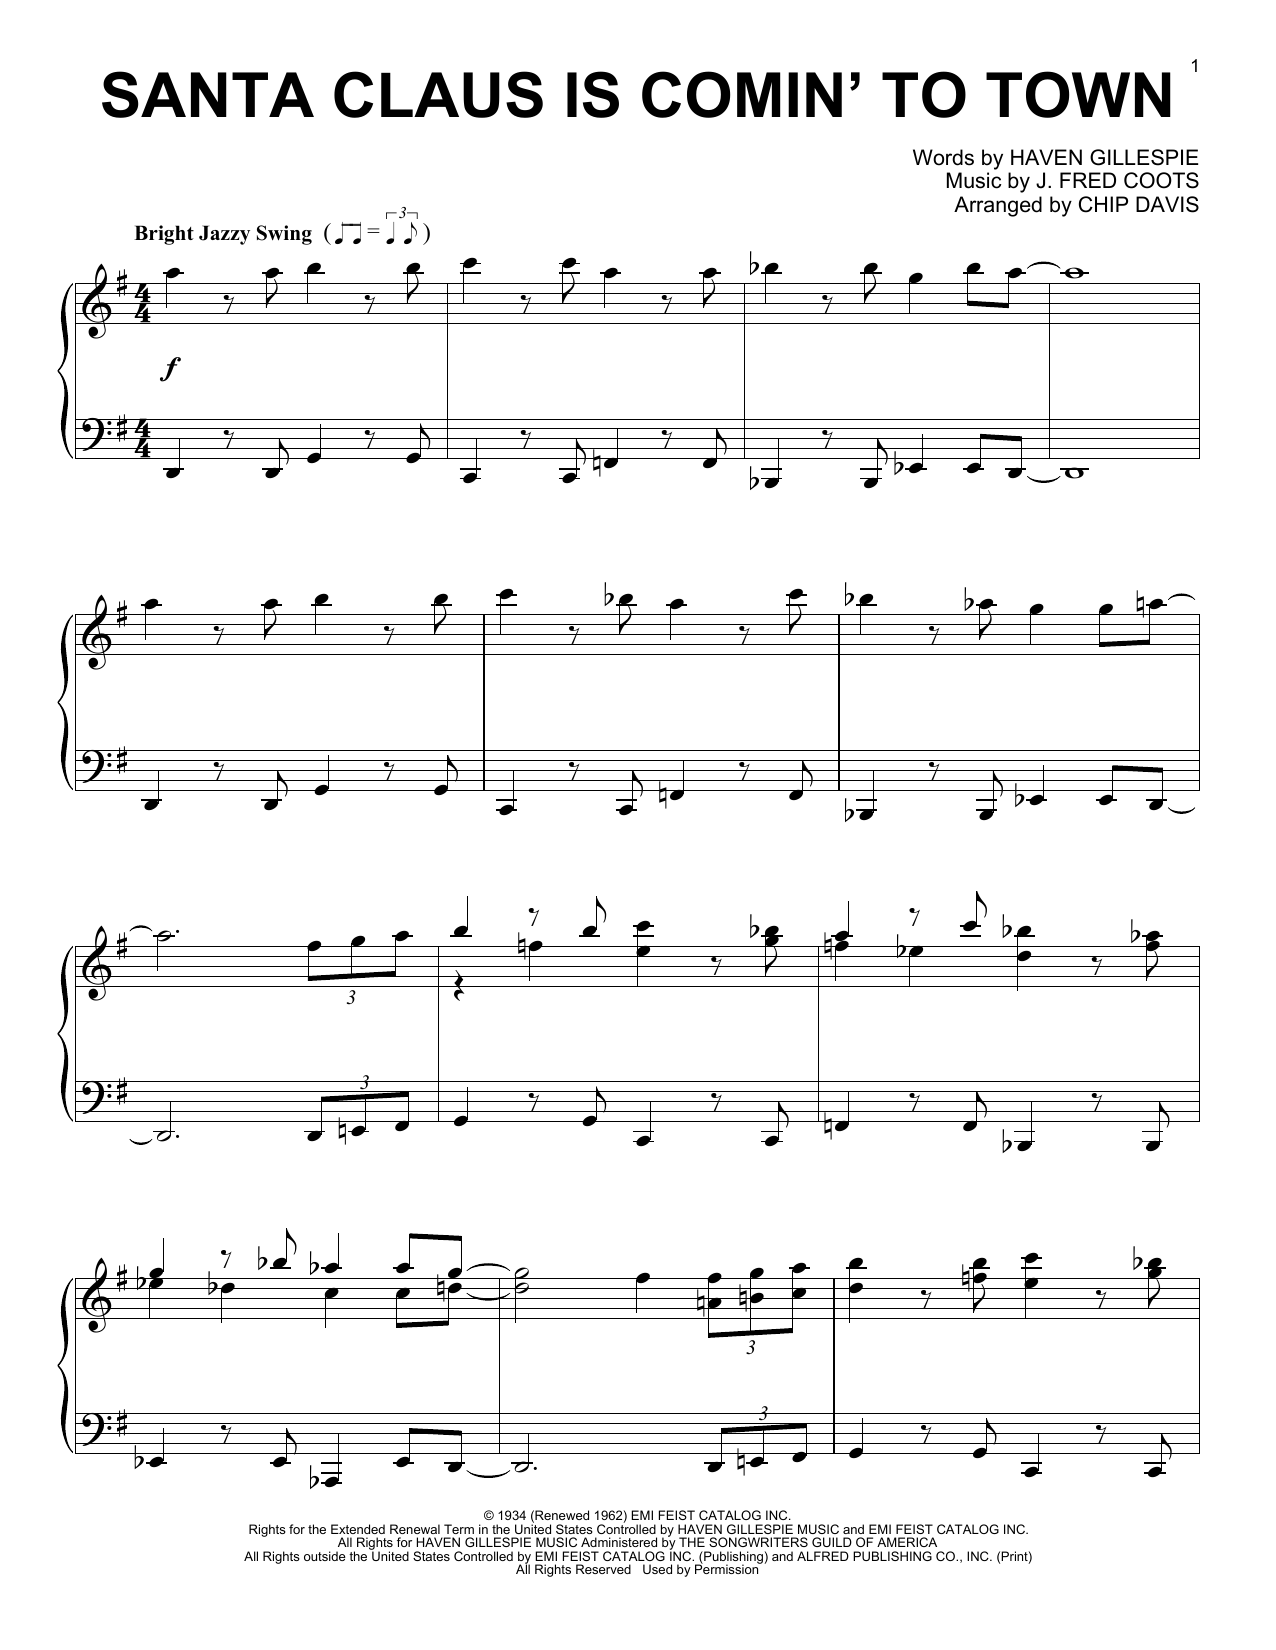 Download Mannheim Steamroller Santa Claus Is Comin' To Town sheet music and printable PDF score & Easy Listening music notes